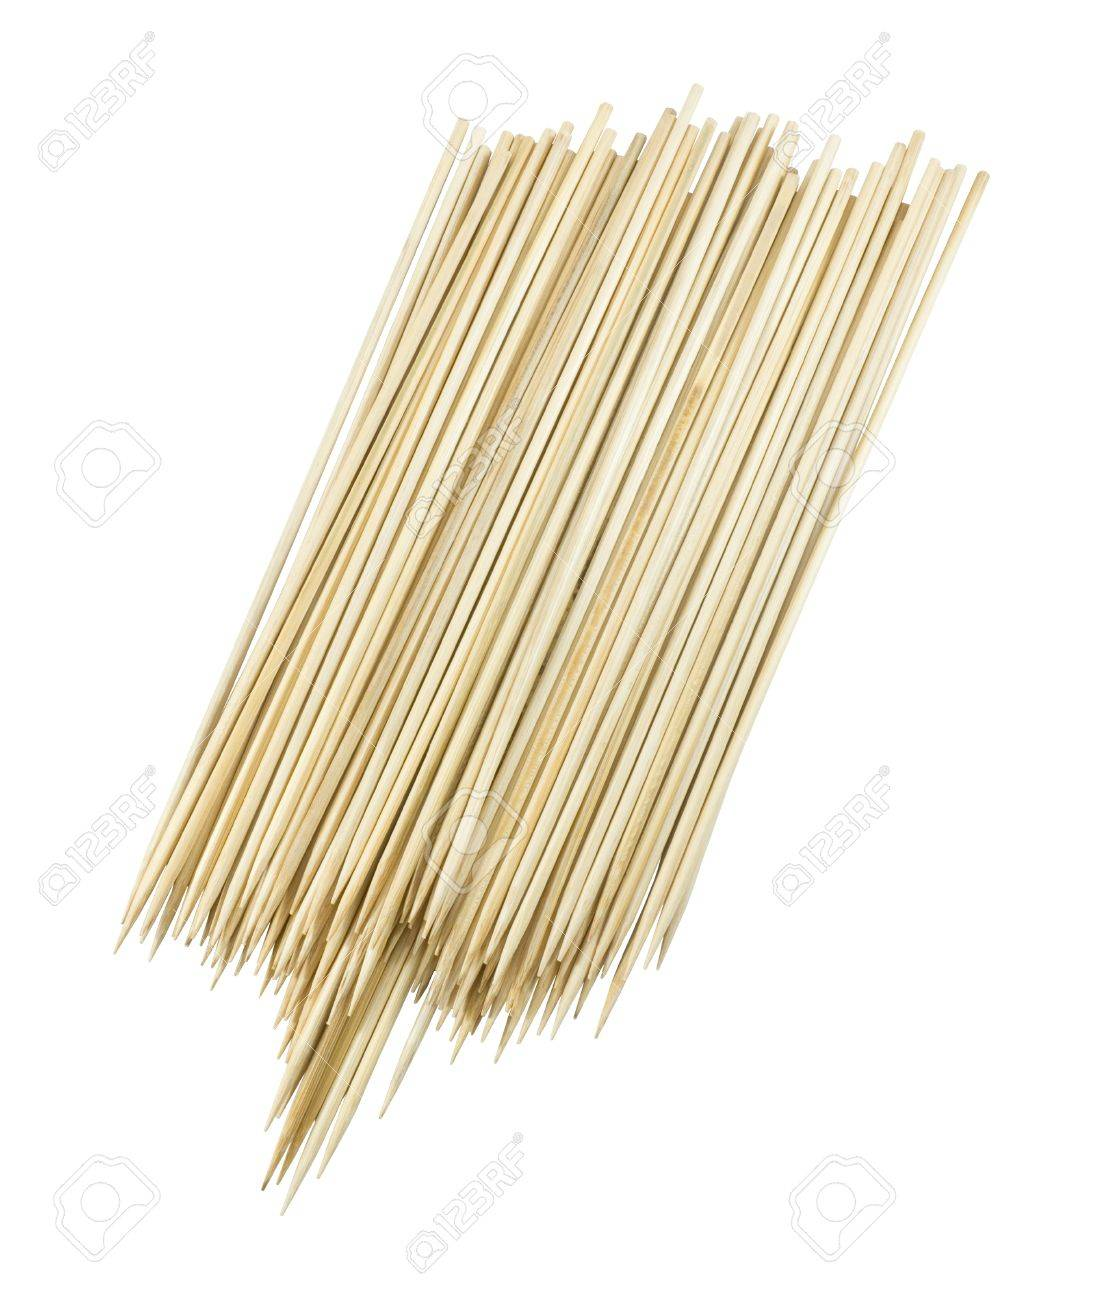 Kitchen Utensils Wooden Sticks Or Wooden Skewers Used To Hold